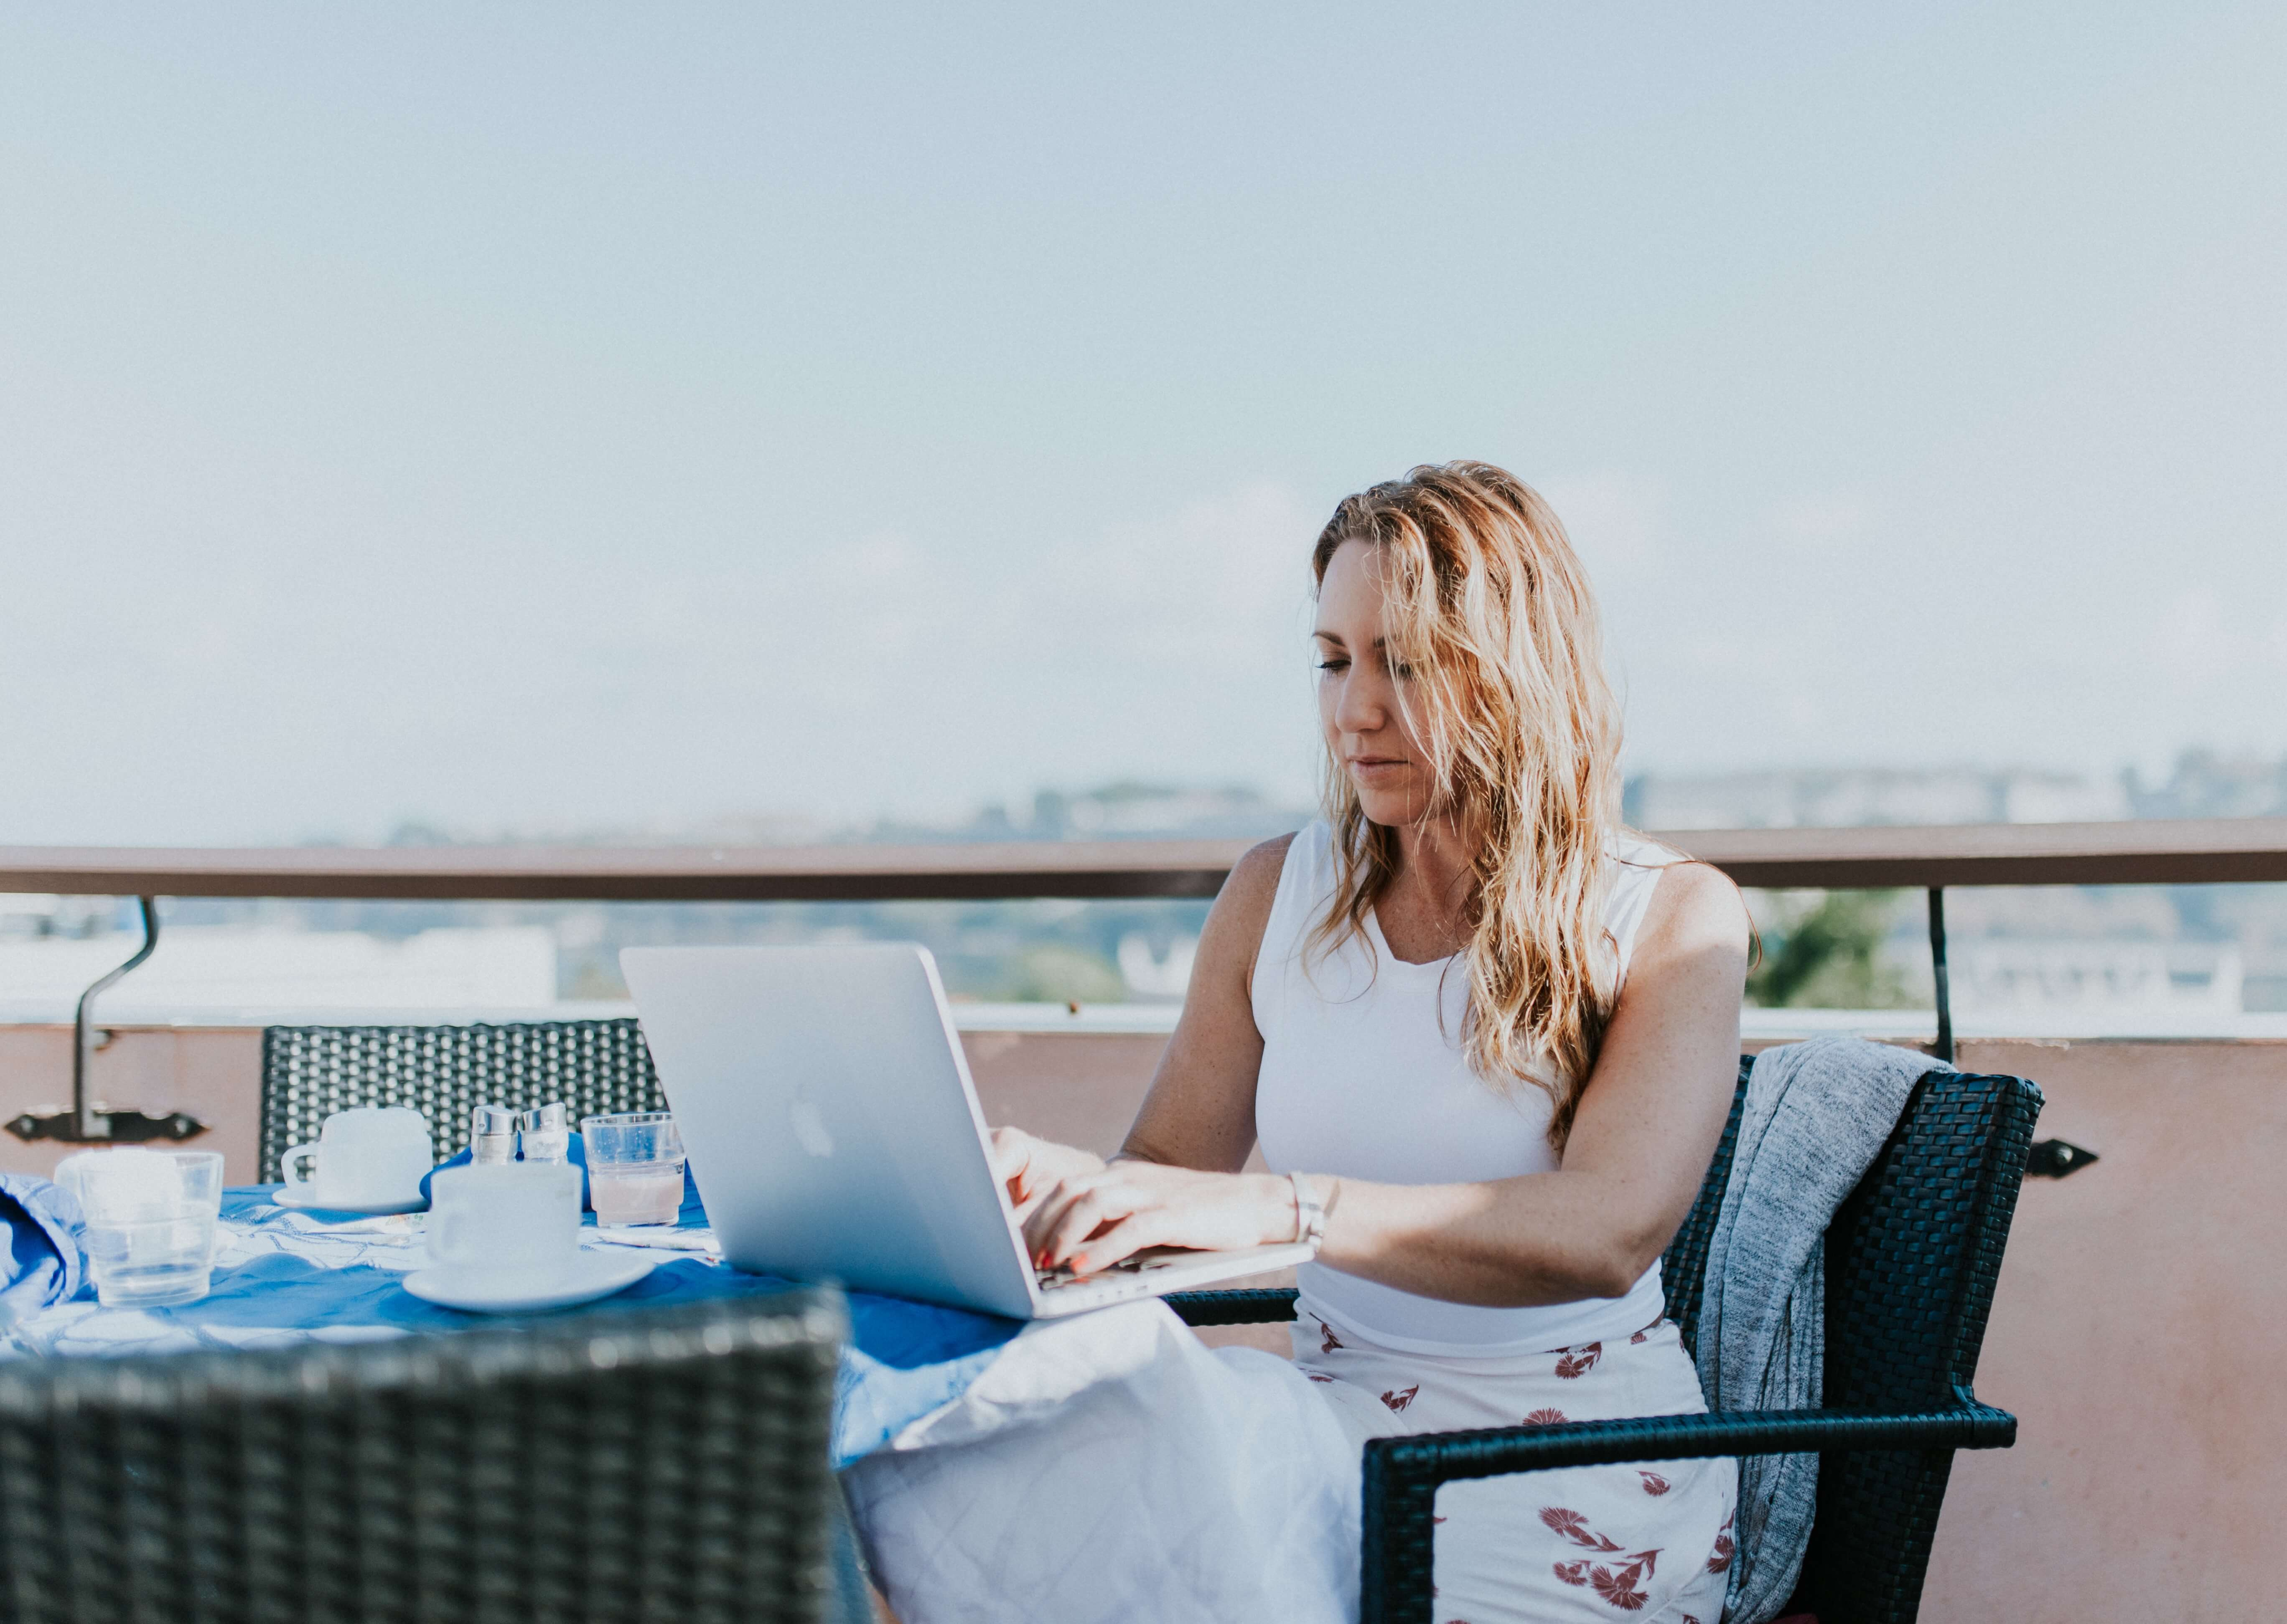 Be your own CEO: Why the benefits of remote work go beyond digital nomadism